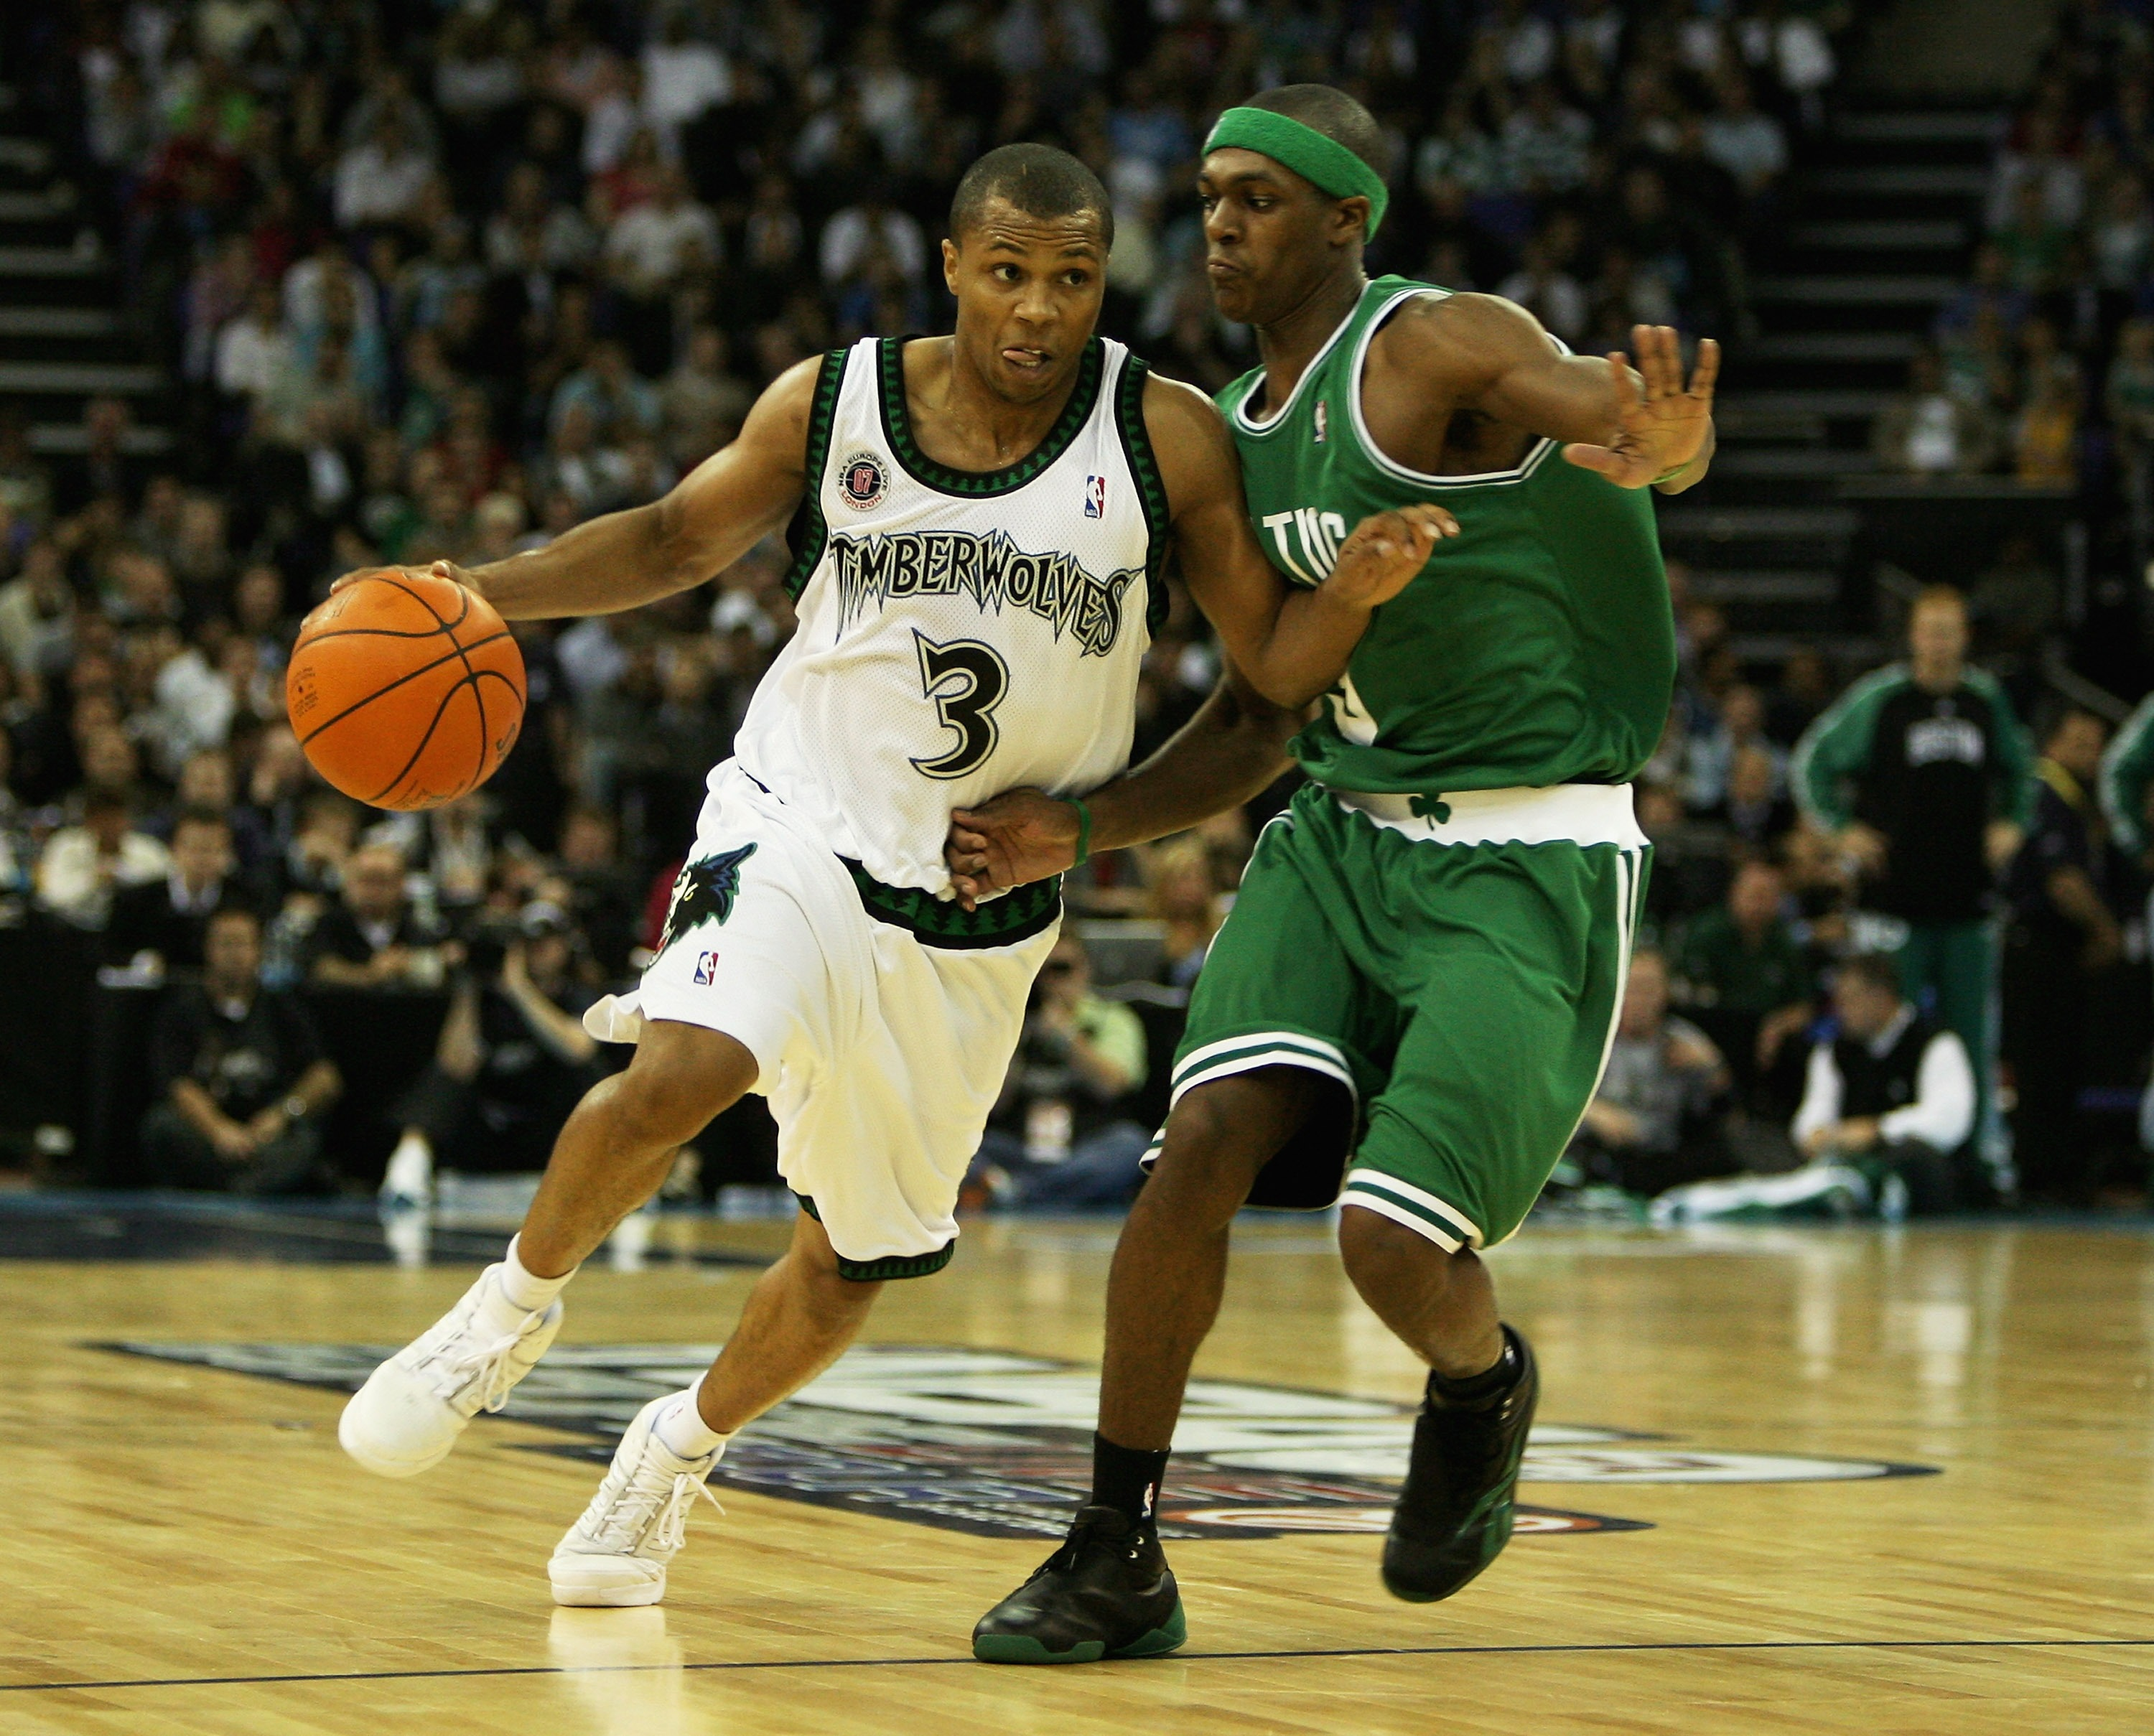 LONDON - OCTOBER 10:  Sebastian Telfair #3 of Minnesota is challenged by Rajon Rondo of Boston during NBA Europe Live 2007 Tour match between the Boston Celtics and the Minnesota Timberwolves at the O2 Arena on October 10, 2007 in London, England.  NOTE T